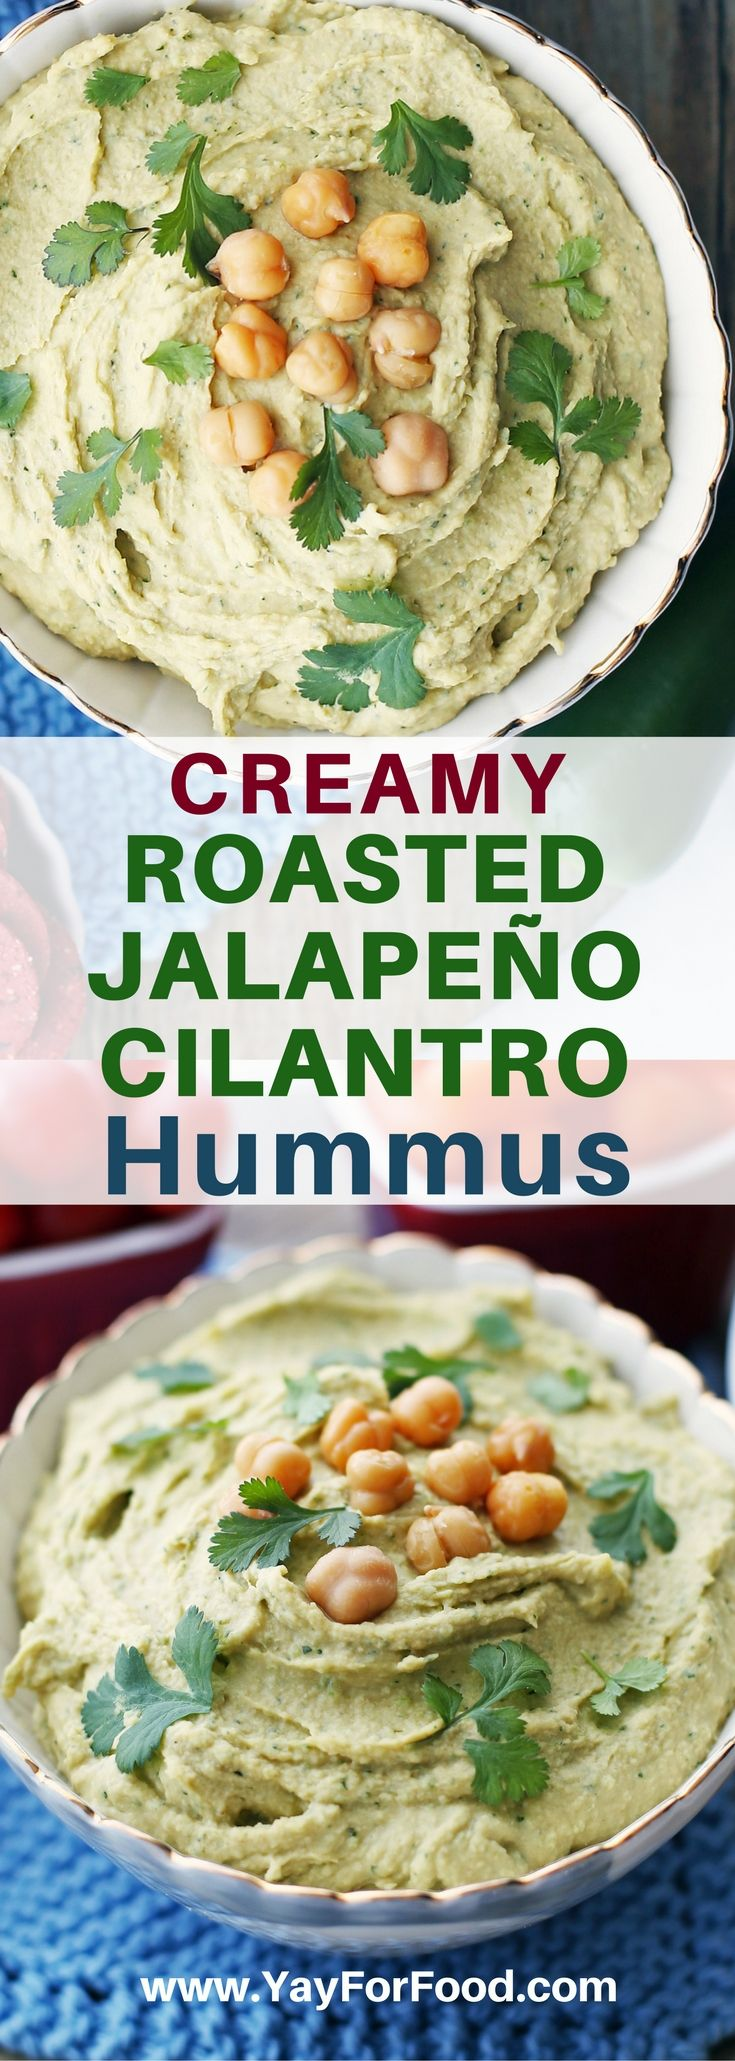 Delicious and creamy! Try this easy homemade spicy jalapeño and cilantro hummus! Perfect as a dip for vegetables and crackers or as a condiment in wraps and sandwiches. #hummus | #vegan | #vegetarian | #glutenfree | #dips | #jalapeno | #cilantro | #snacks | #appetizer